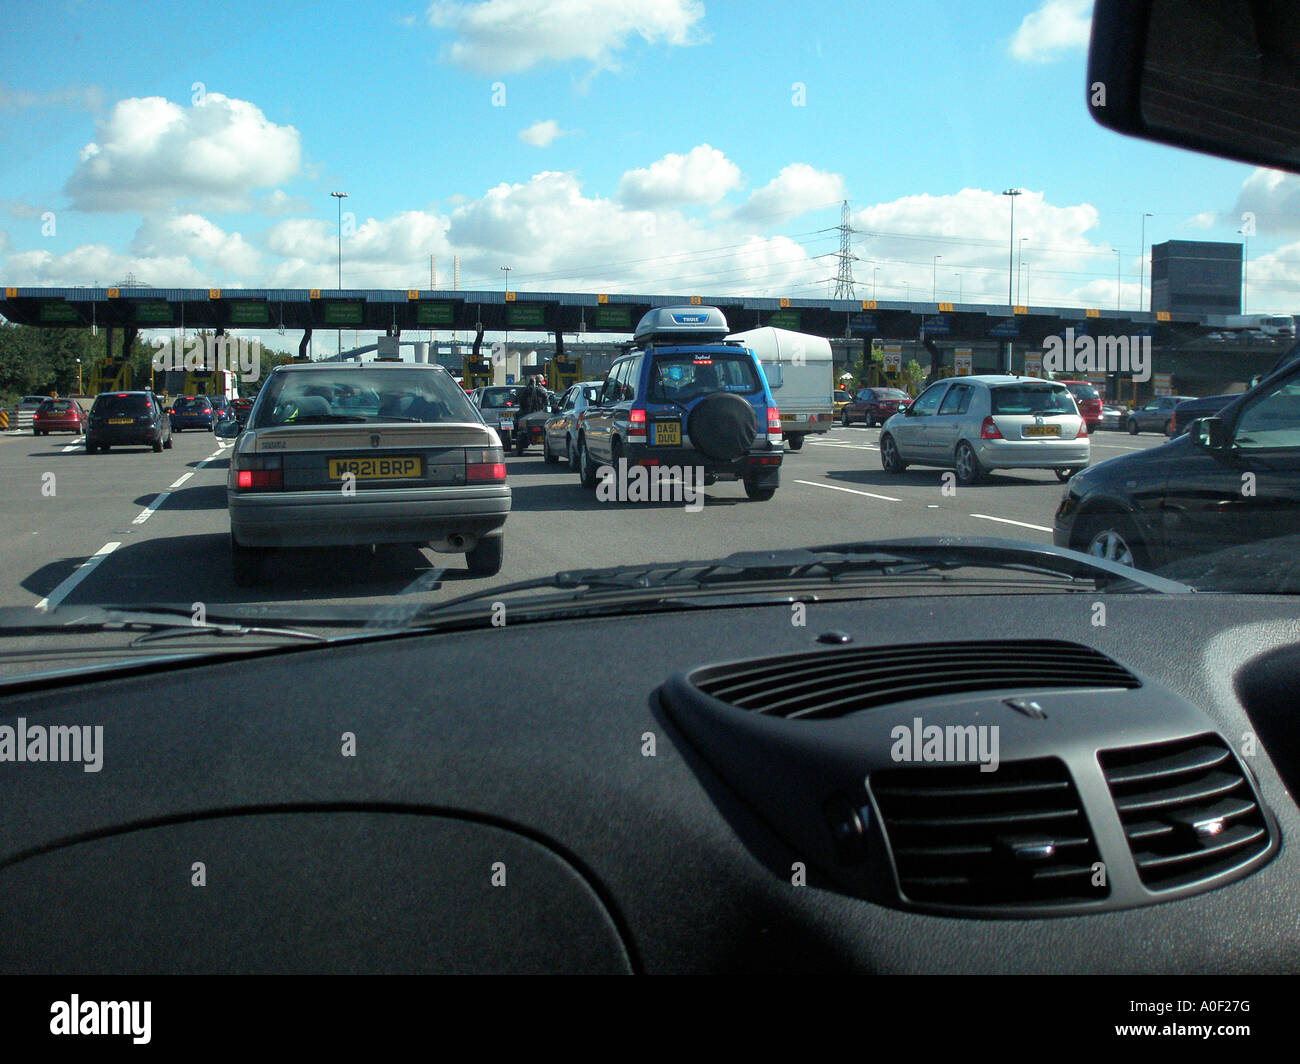 Queues for toll booths at Dartford tunnel - Stock Image